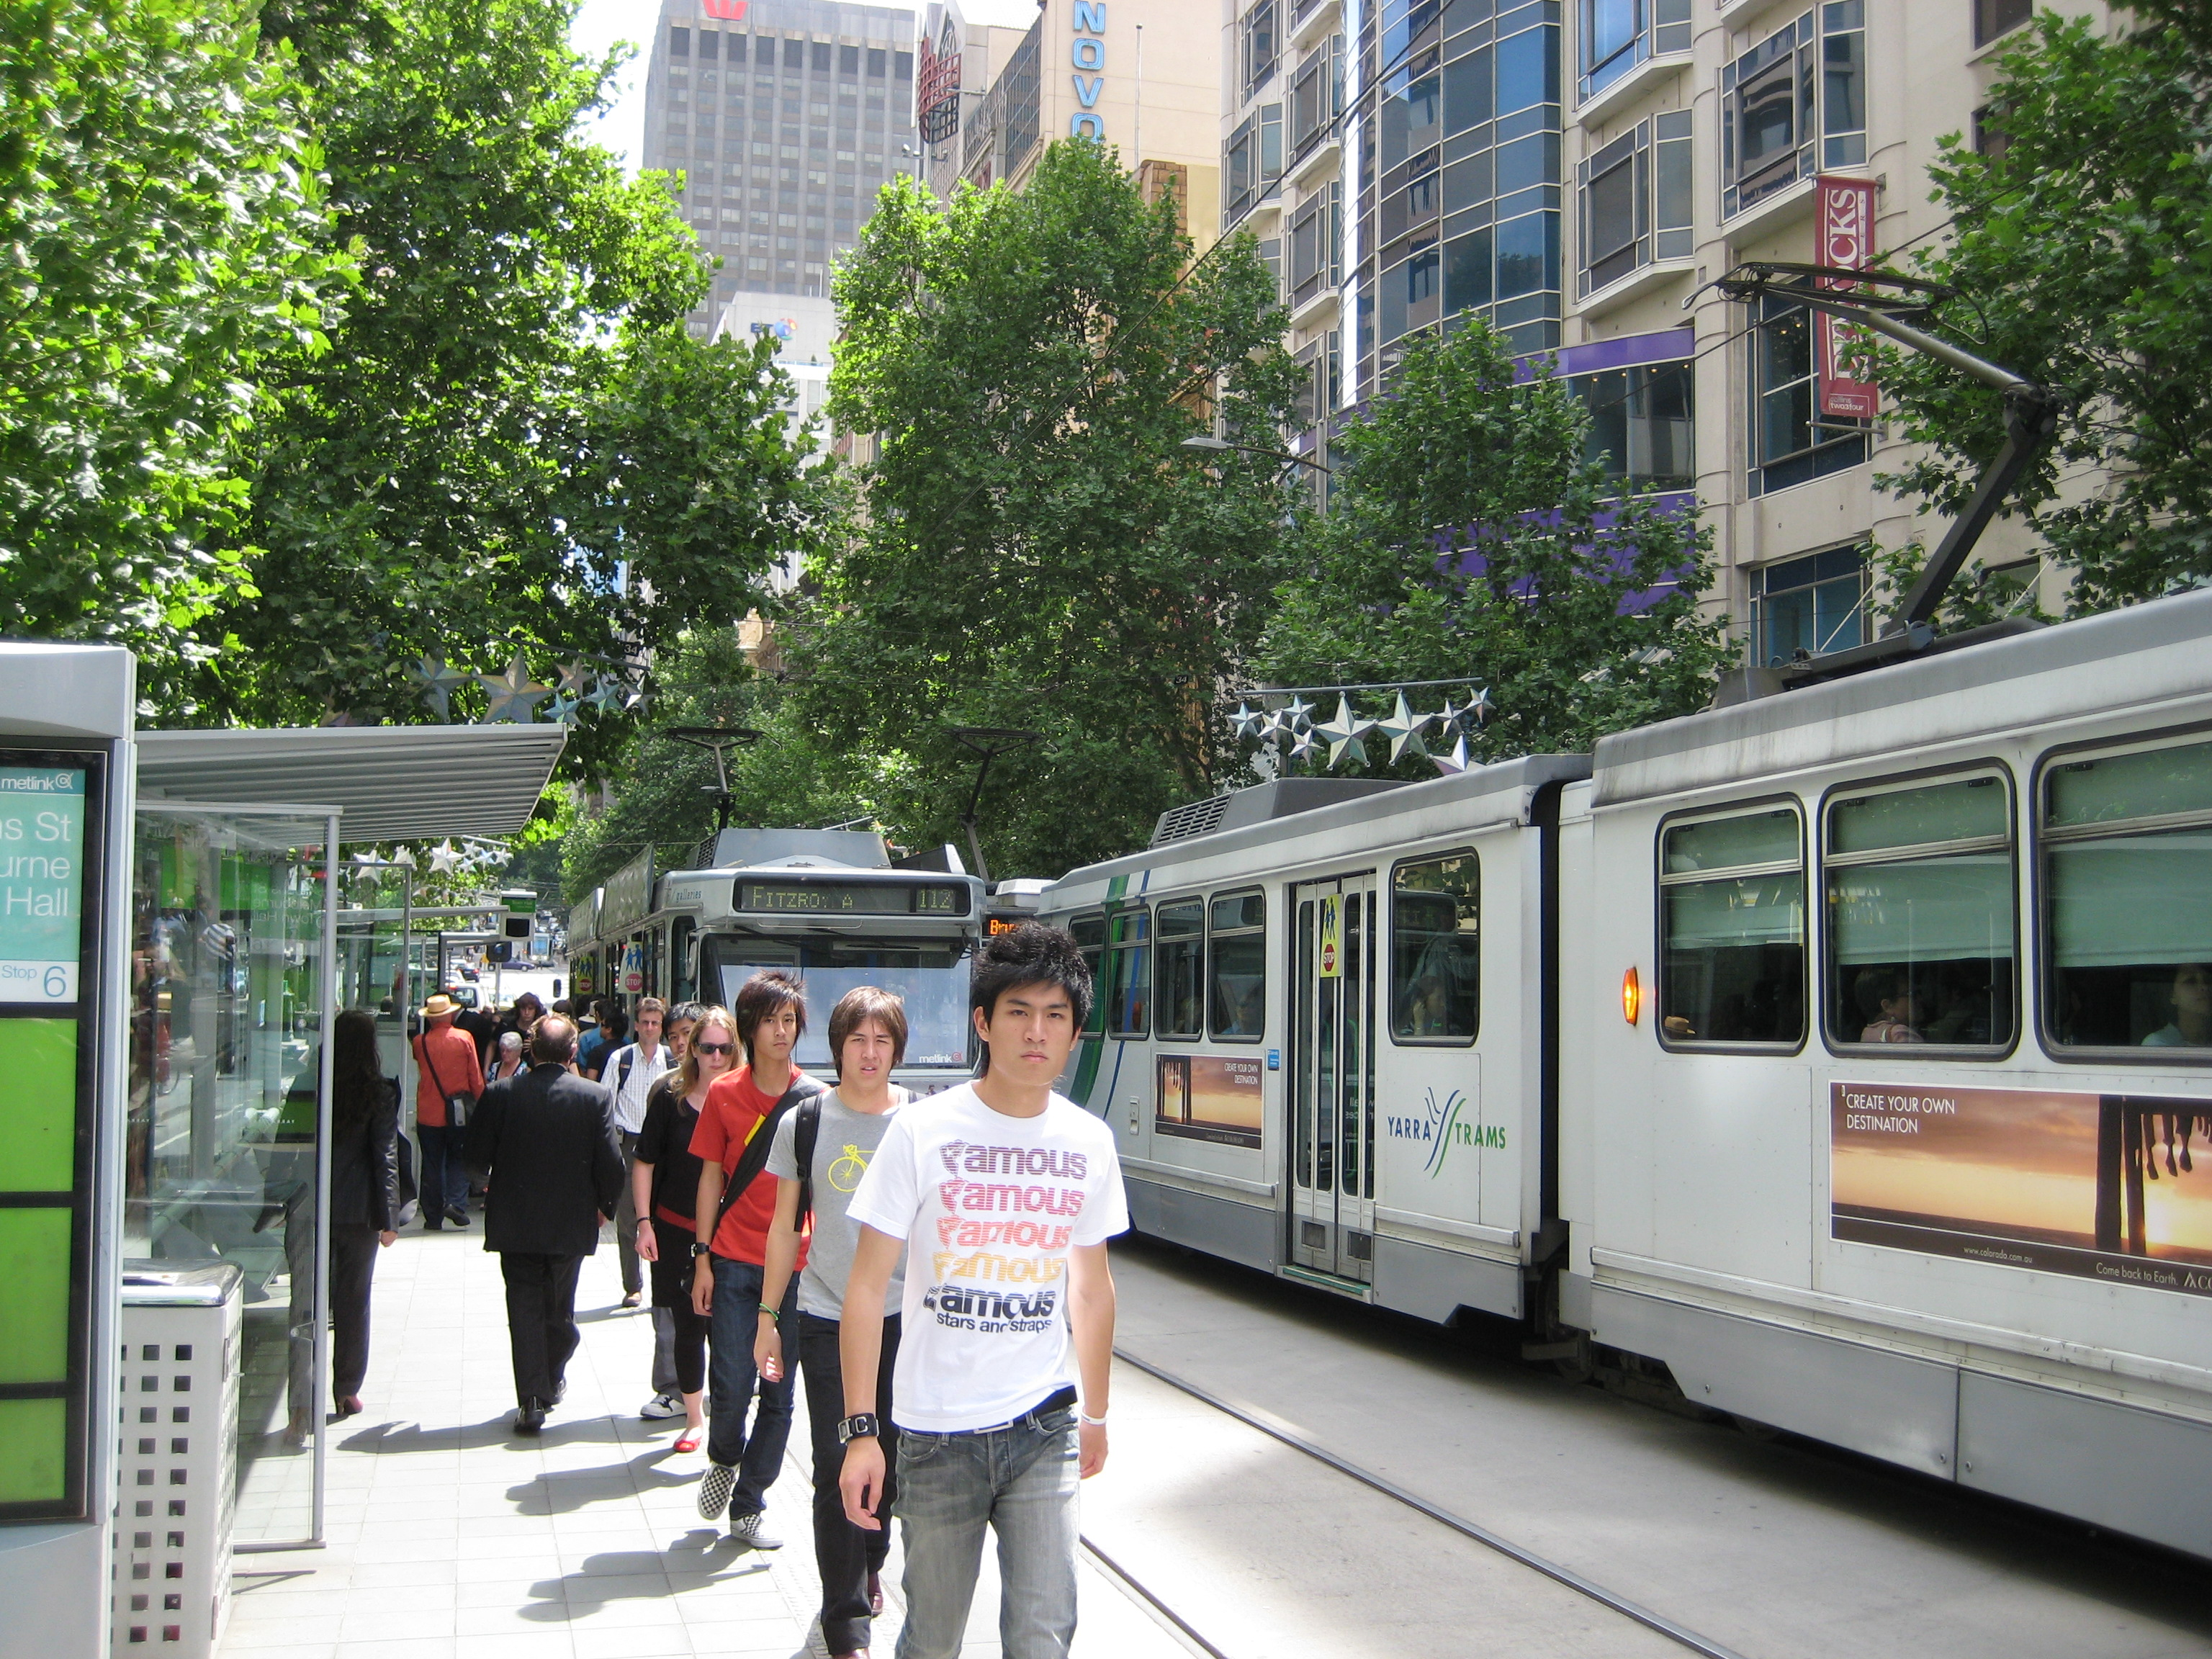 Pedestrians walking past two trams at a tram stop